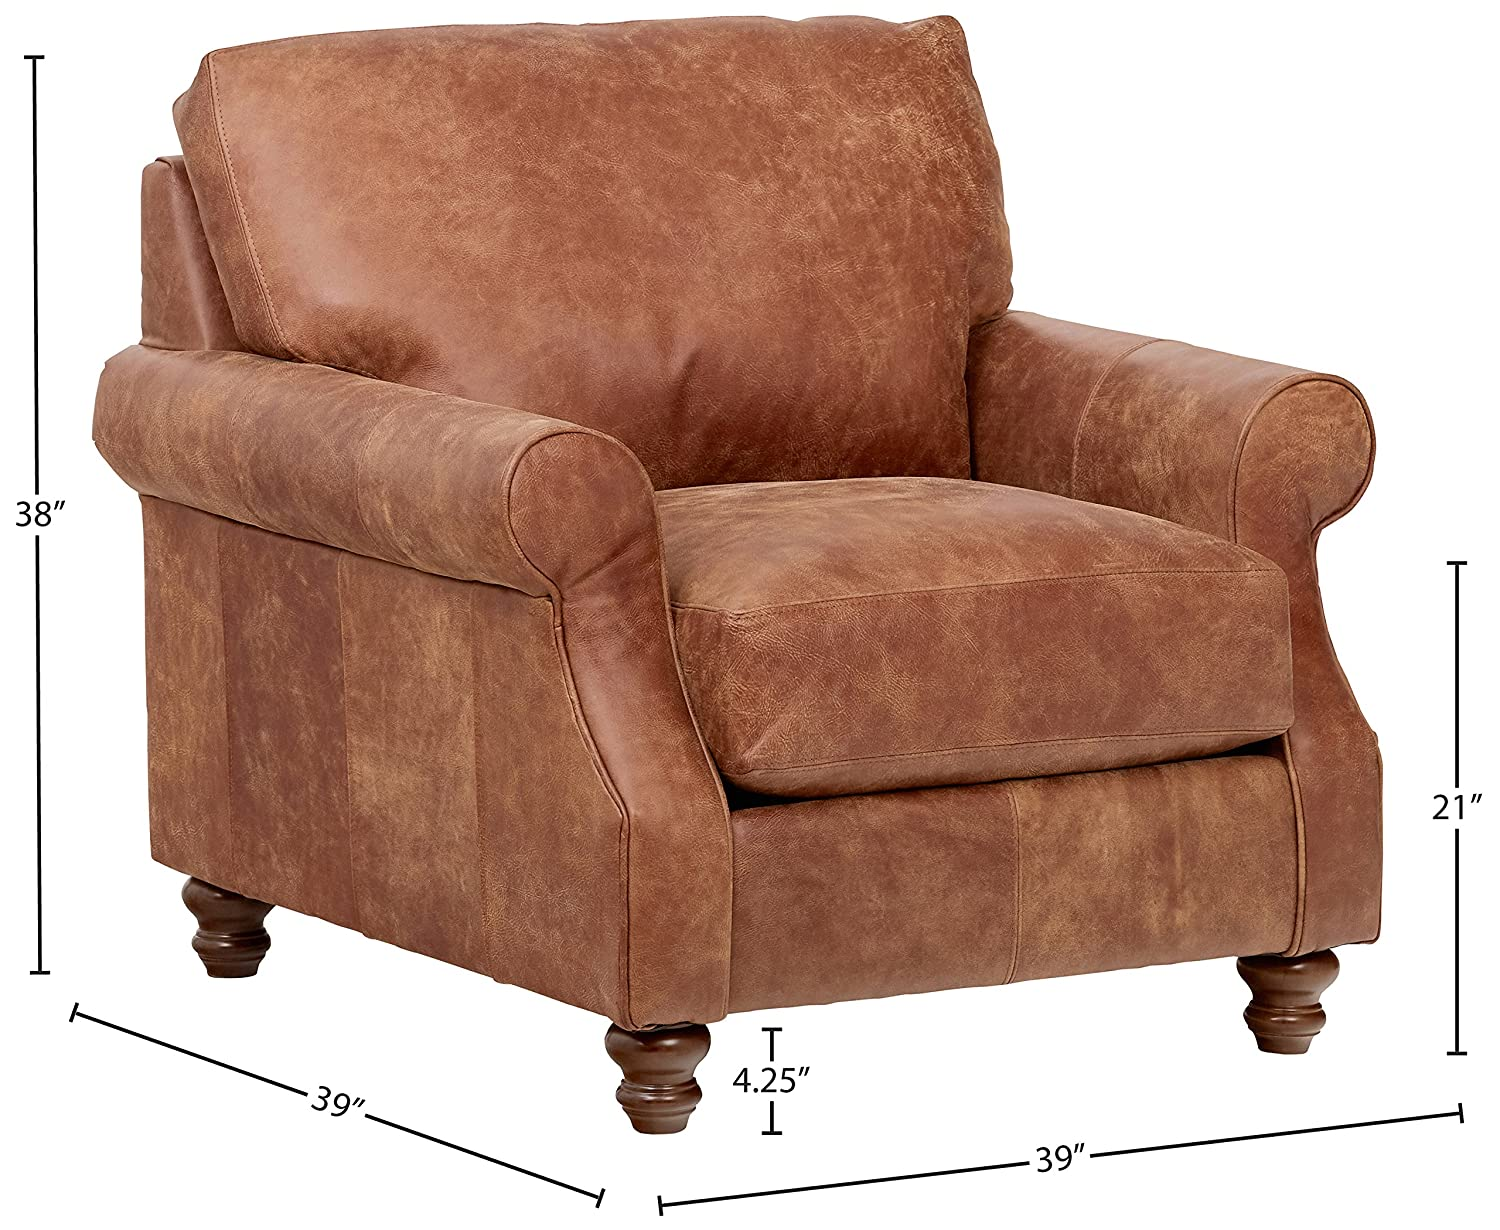 Stone Beam Charles Classic Oversized Leather Accent Arm Chair, 39 W, Saddle Brown